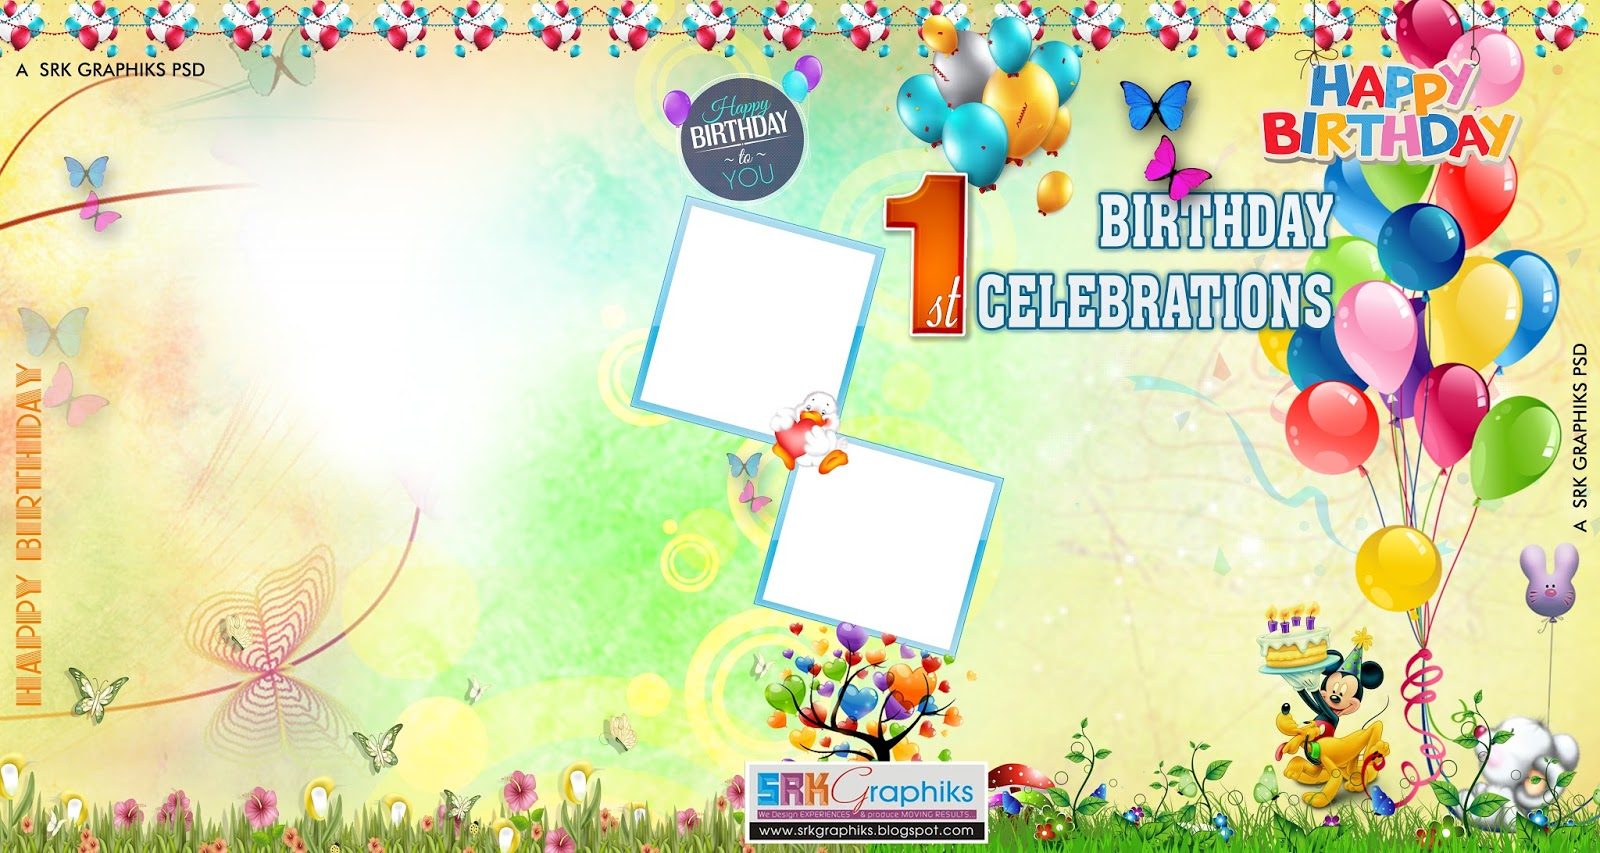 happy birthday psd background ; happy-birthday-psd-background-5